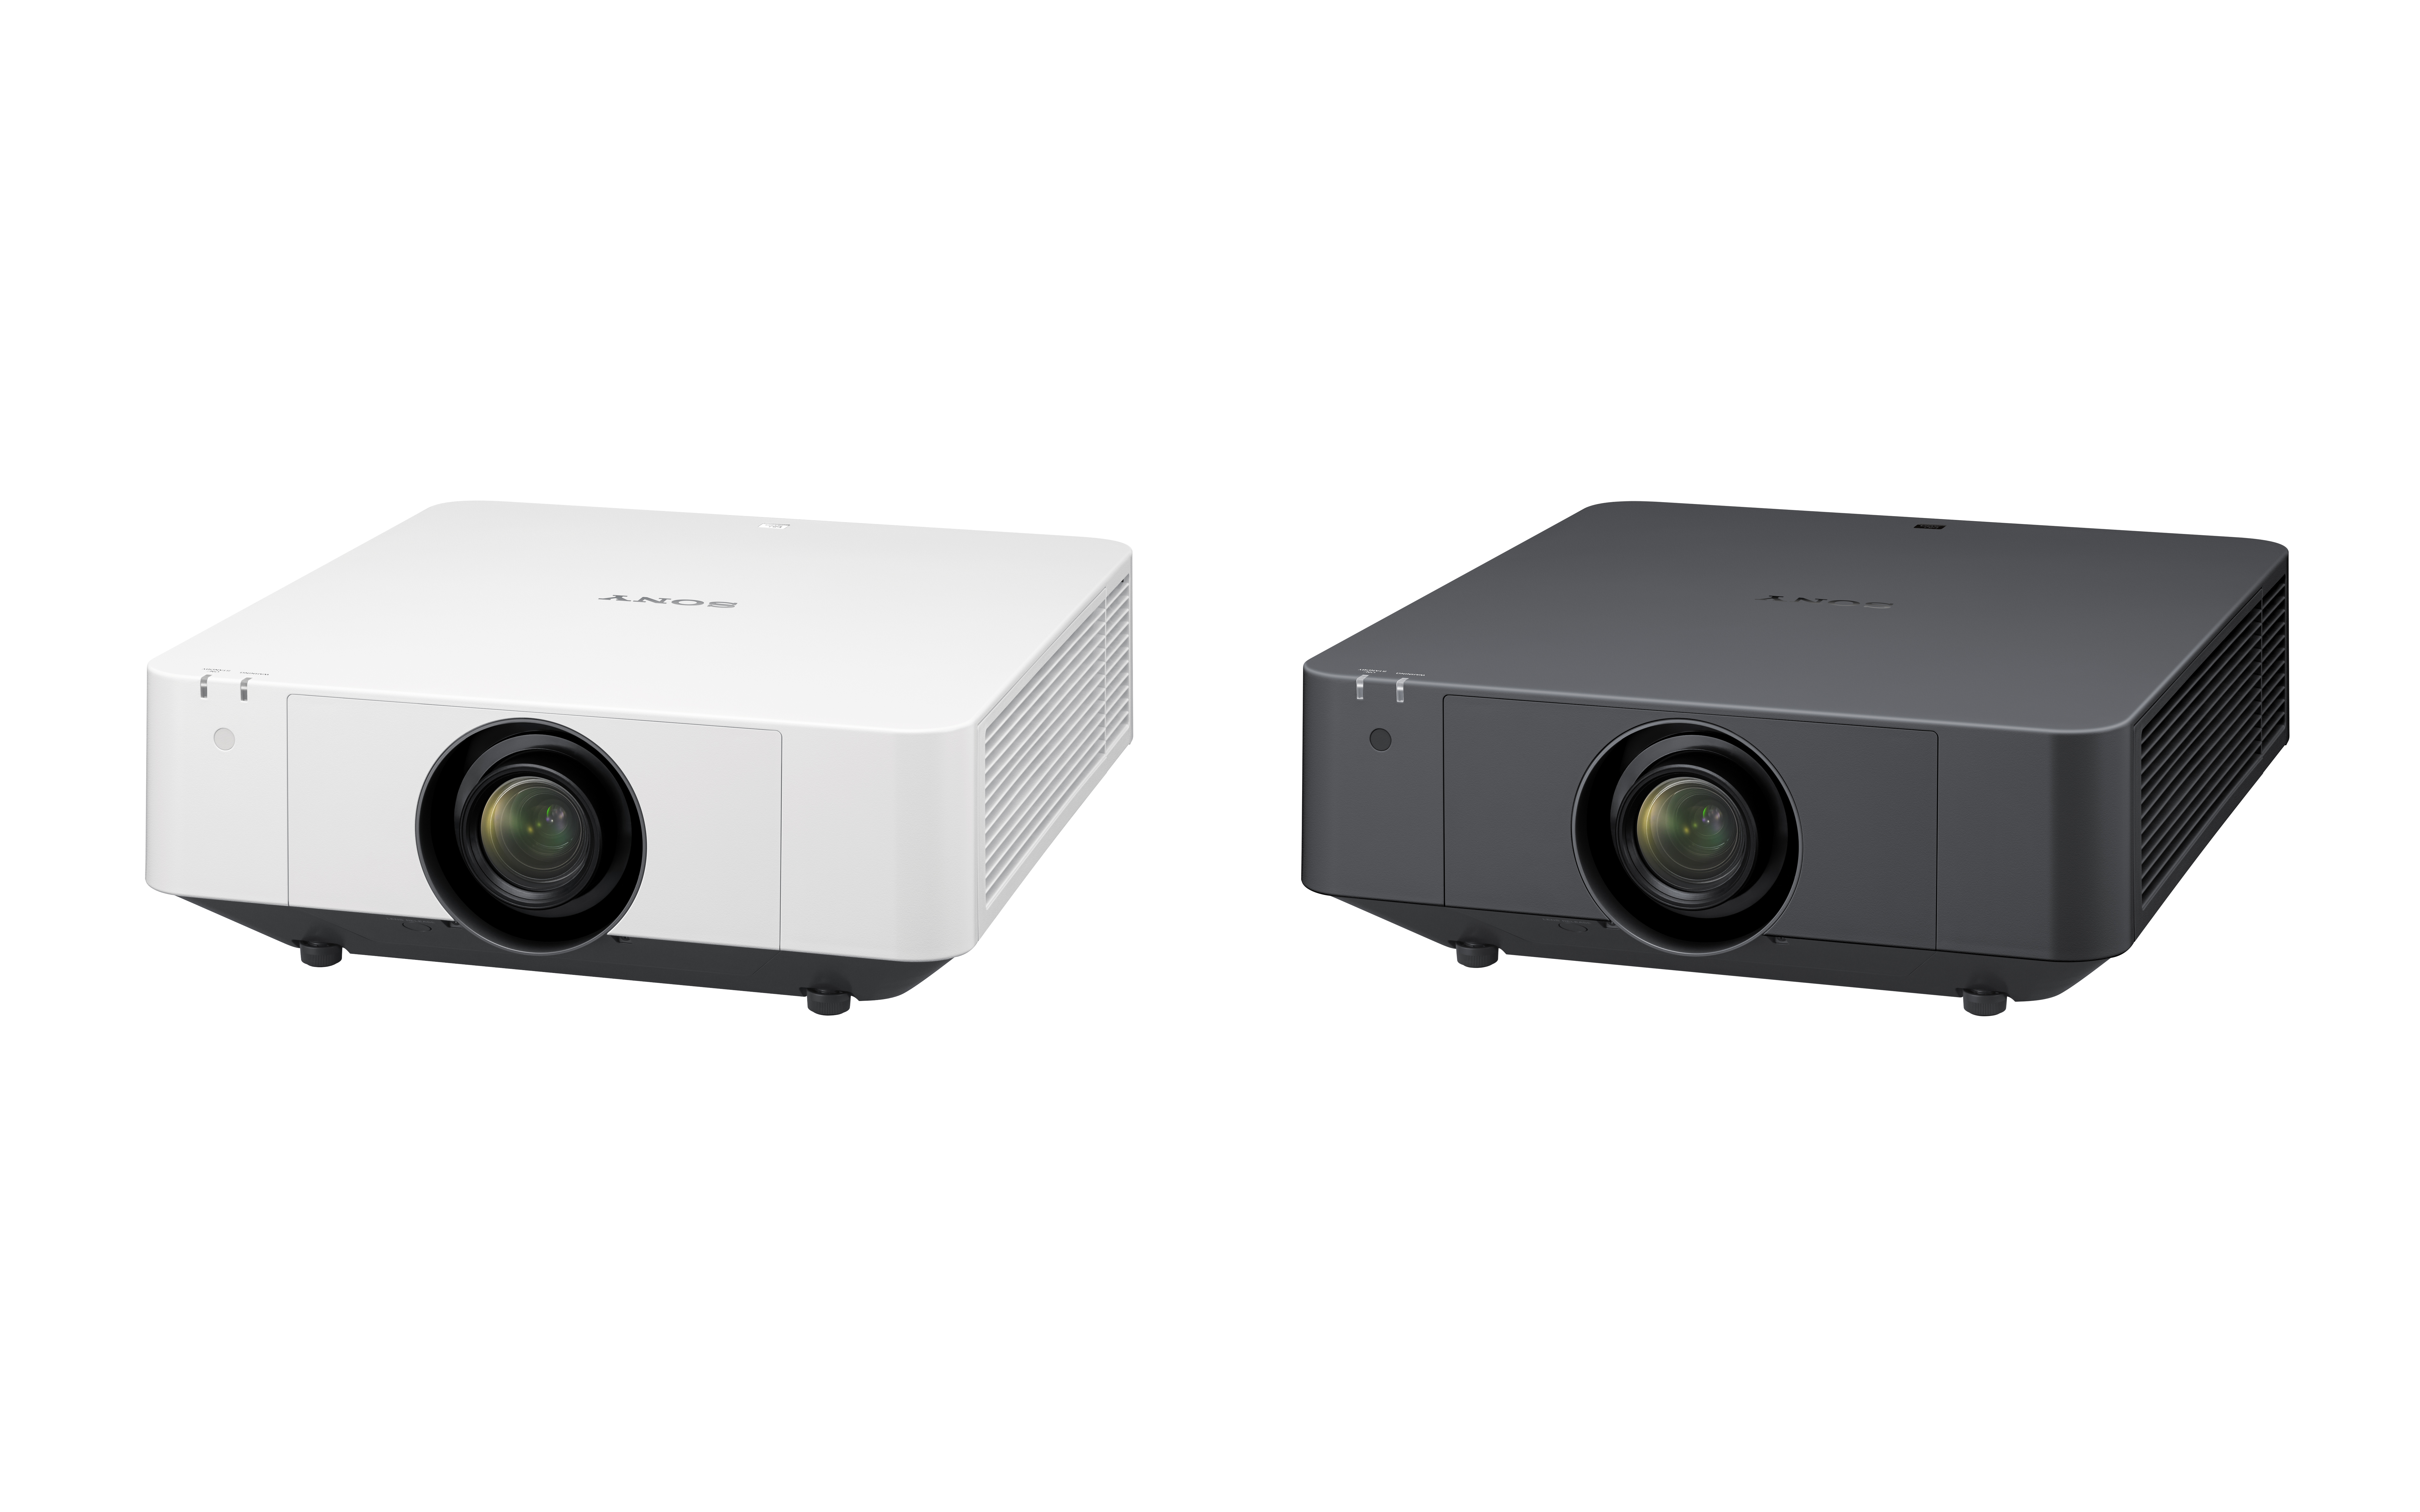 Sony Introduces Two Laser Projectors Using Newly Developed LCD Panels to Deliver High-contrast Images with Enhanced Clarity for Universities, Corporate Organizations, Churches, Entertainment and Museums